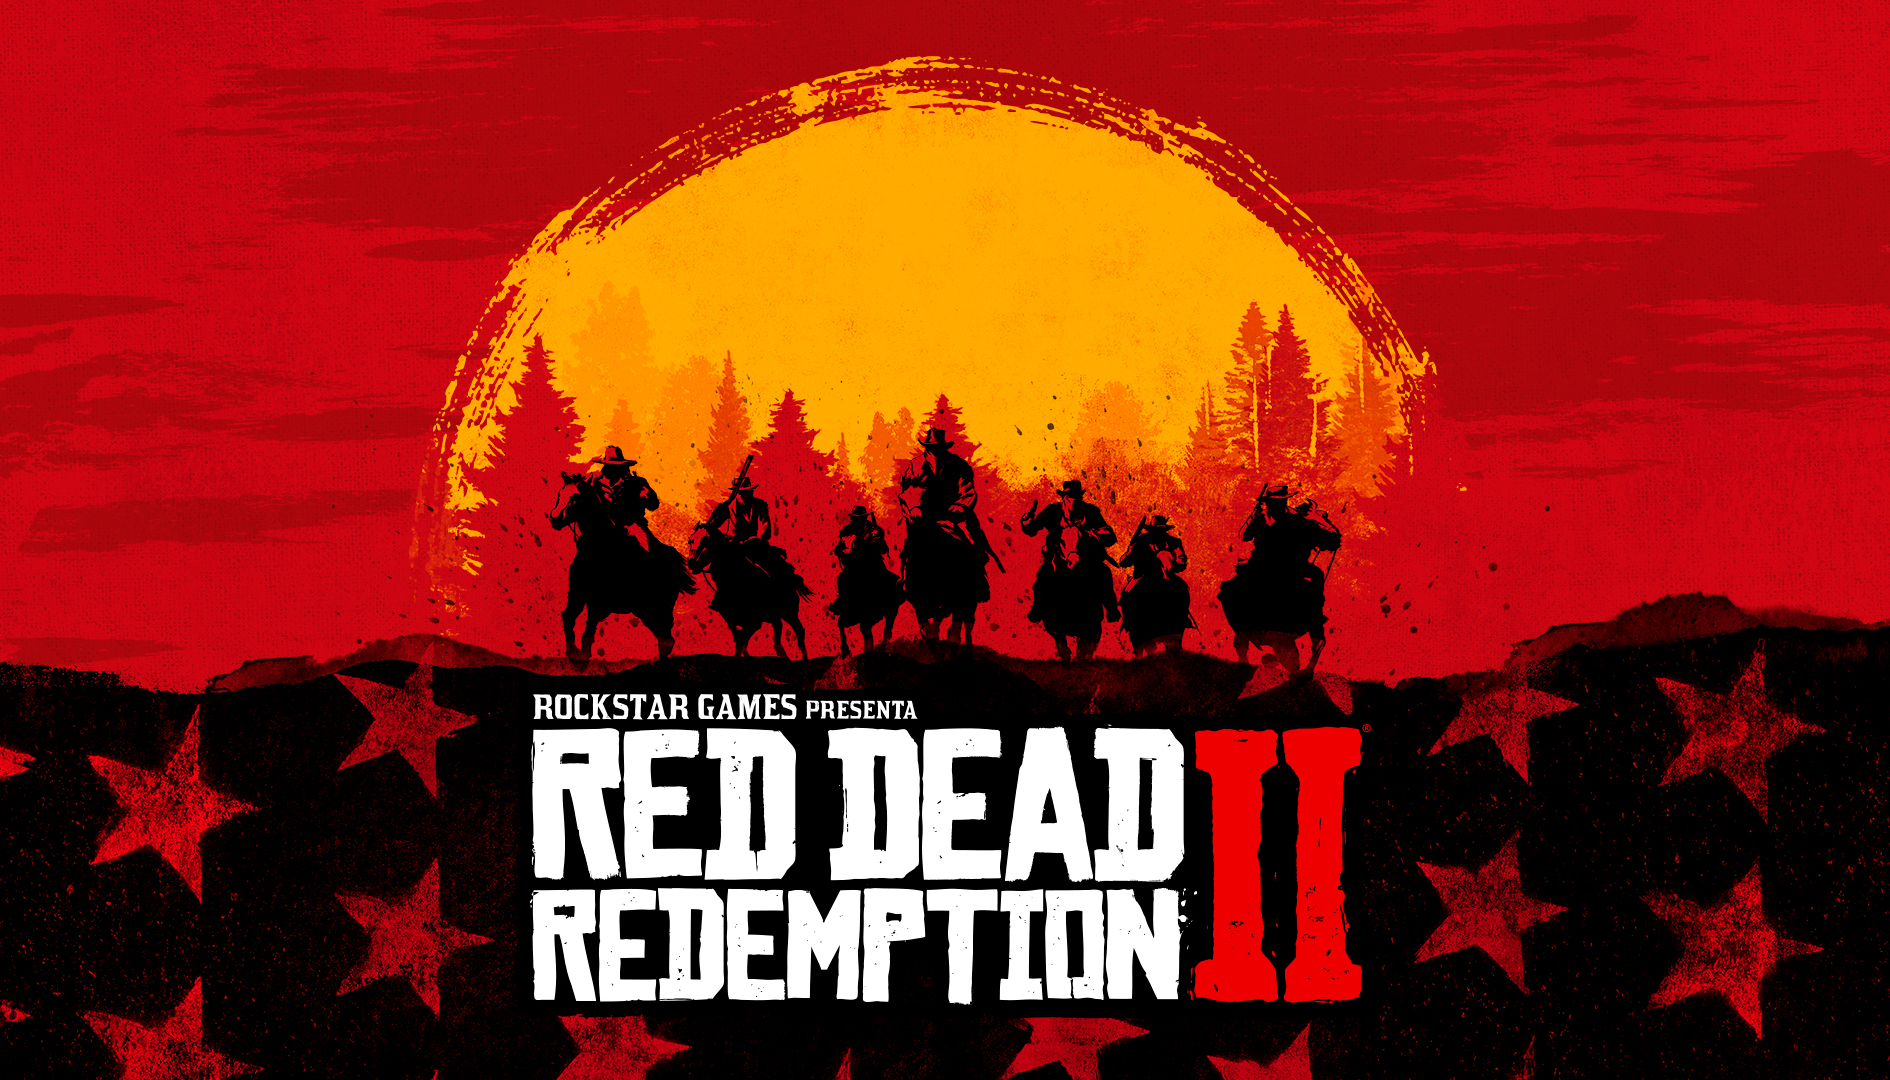 Red Dead Redemption 2 per PC spunta nel curriculum di un ex Rockstar Games